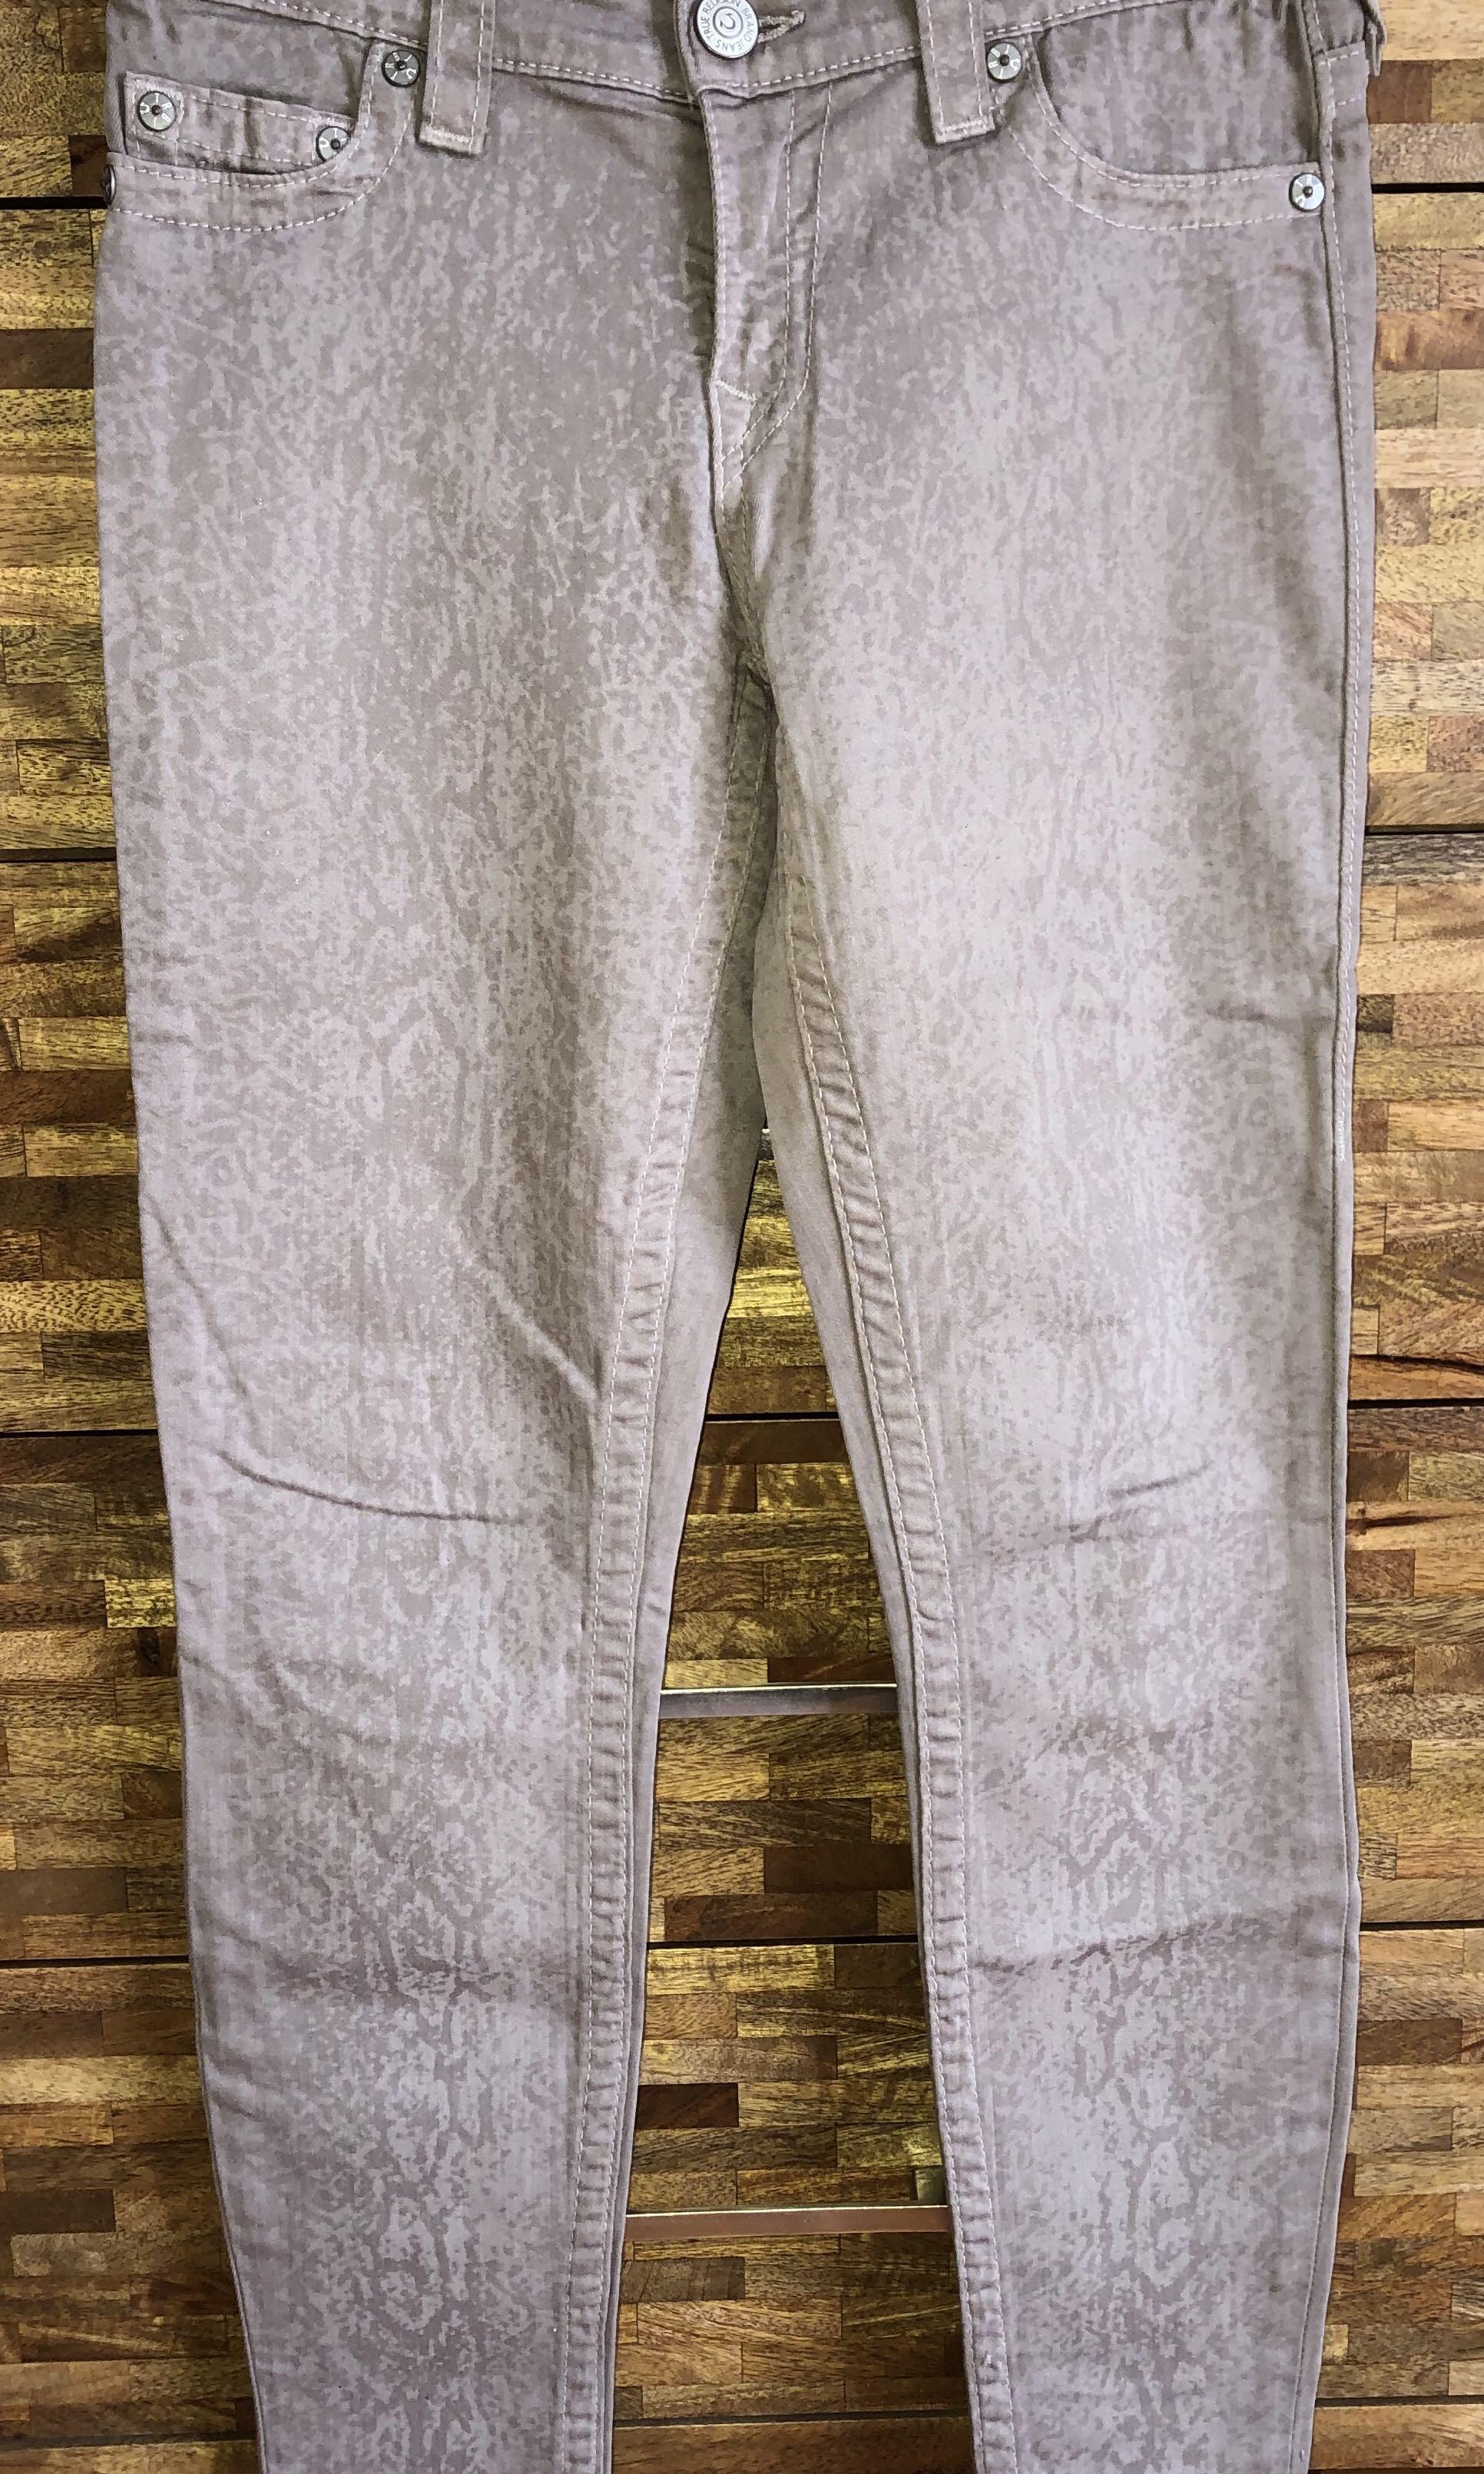 True Religion Subtle Snake Print Grey Jeans Size 27 made in USA